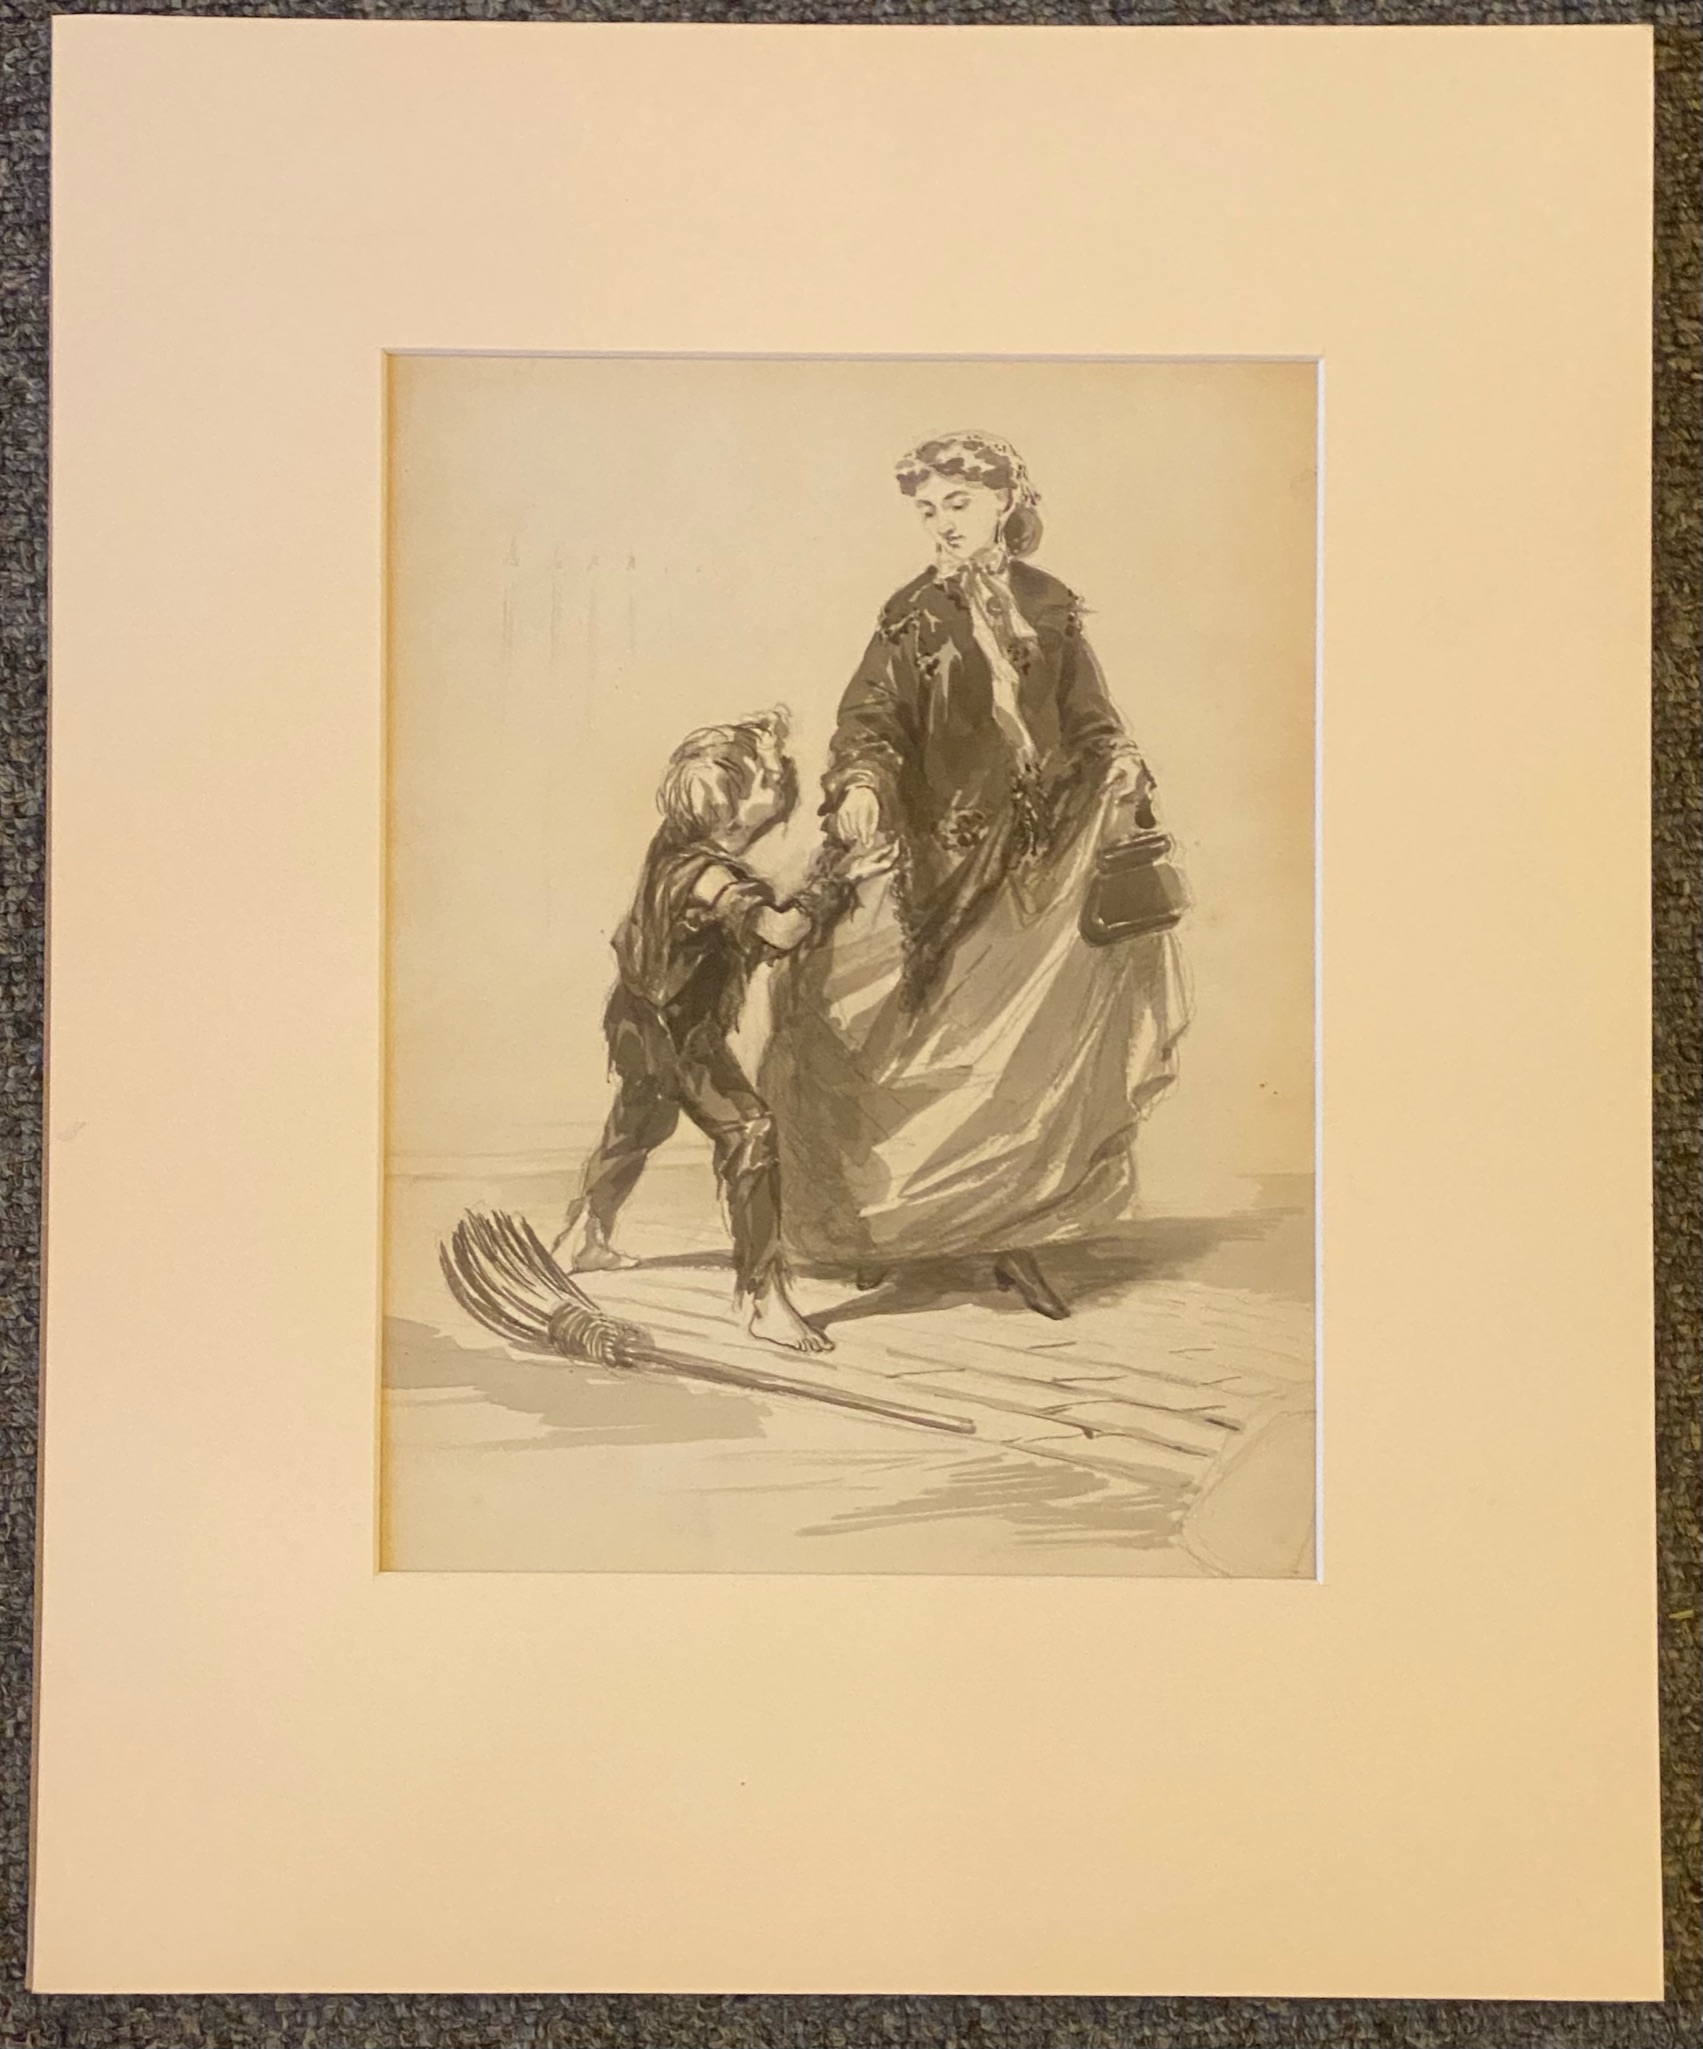 Manner of Erskine Nicol unsigned original drawing Sweep and Lady - Image 2 of 2